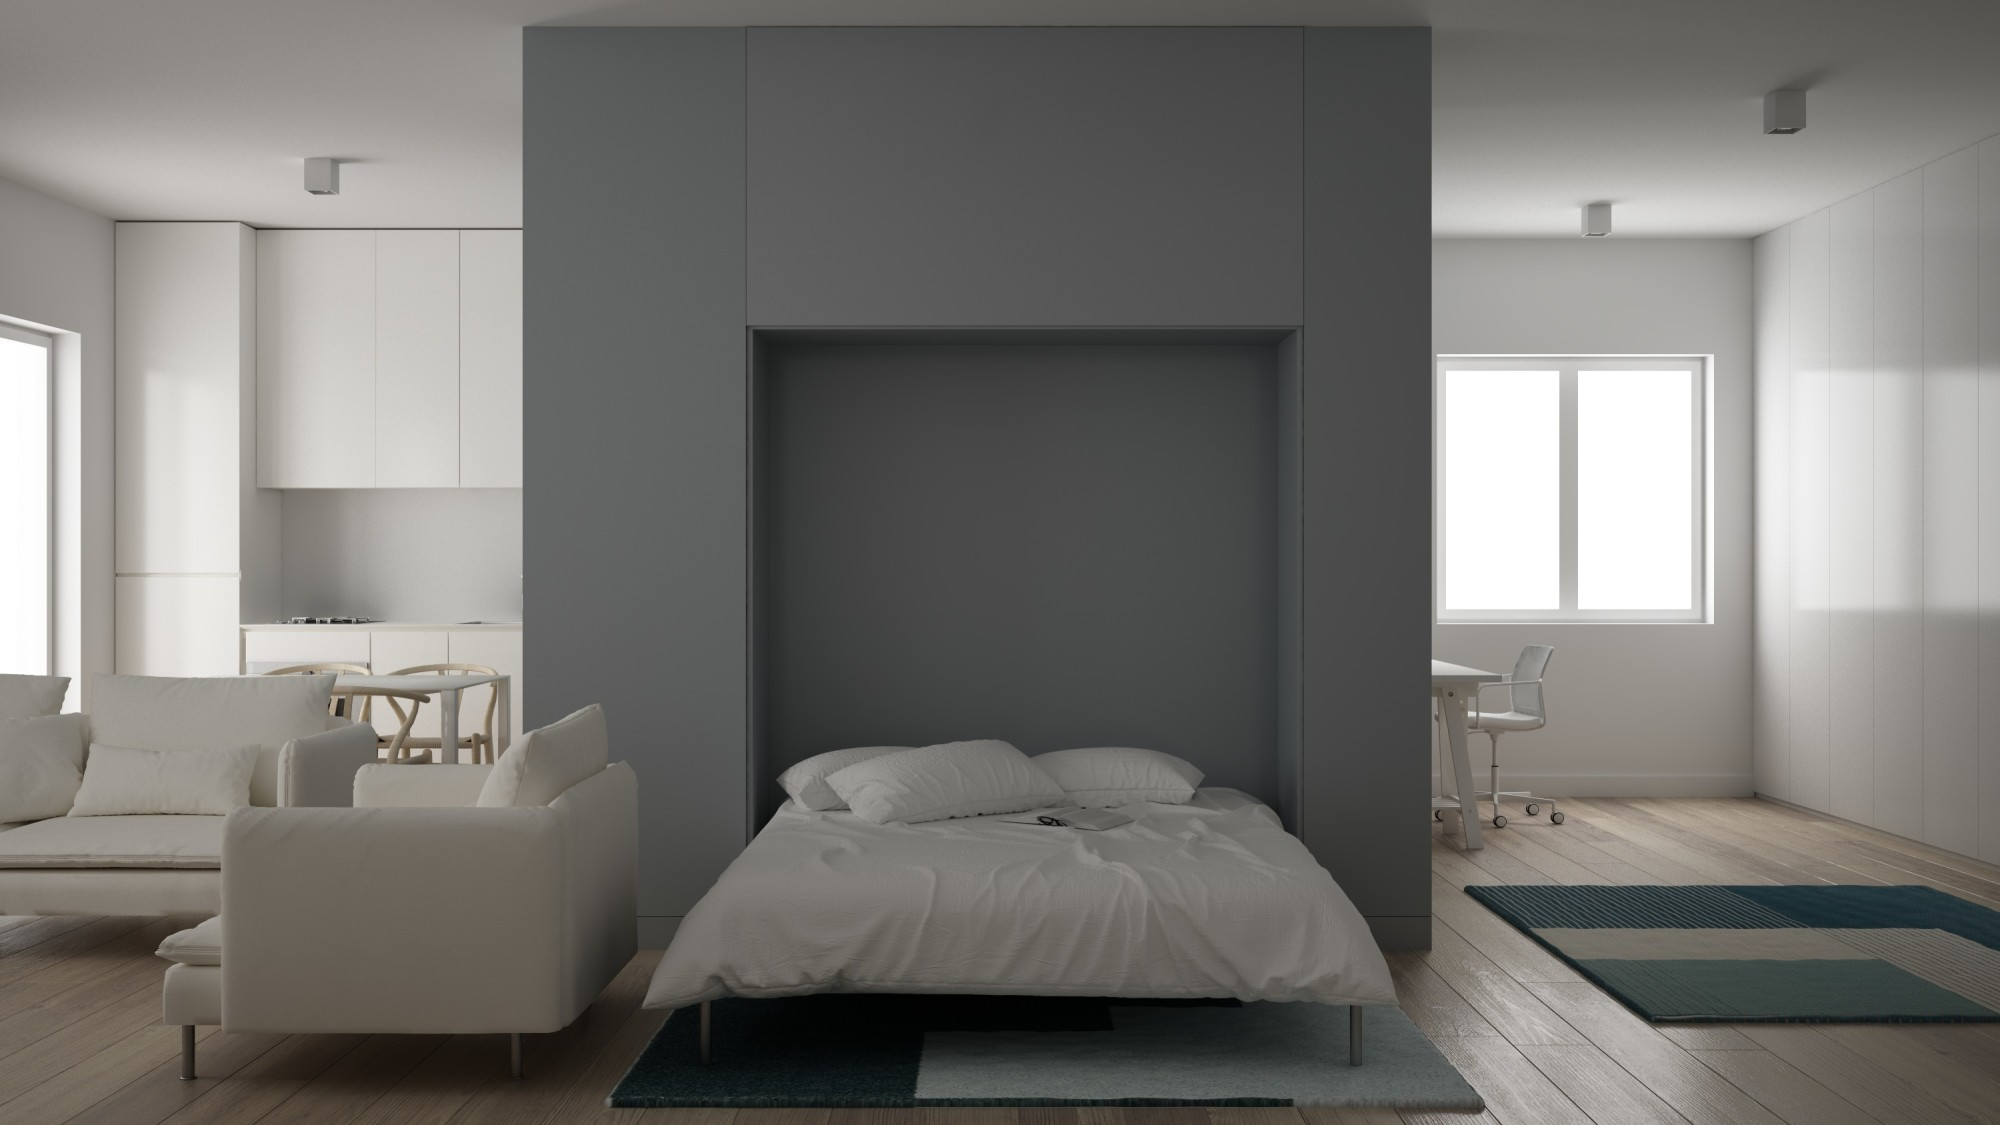 A Guide on How to Buy the Best Murphy Bed for Your Home - Daily